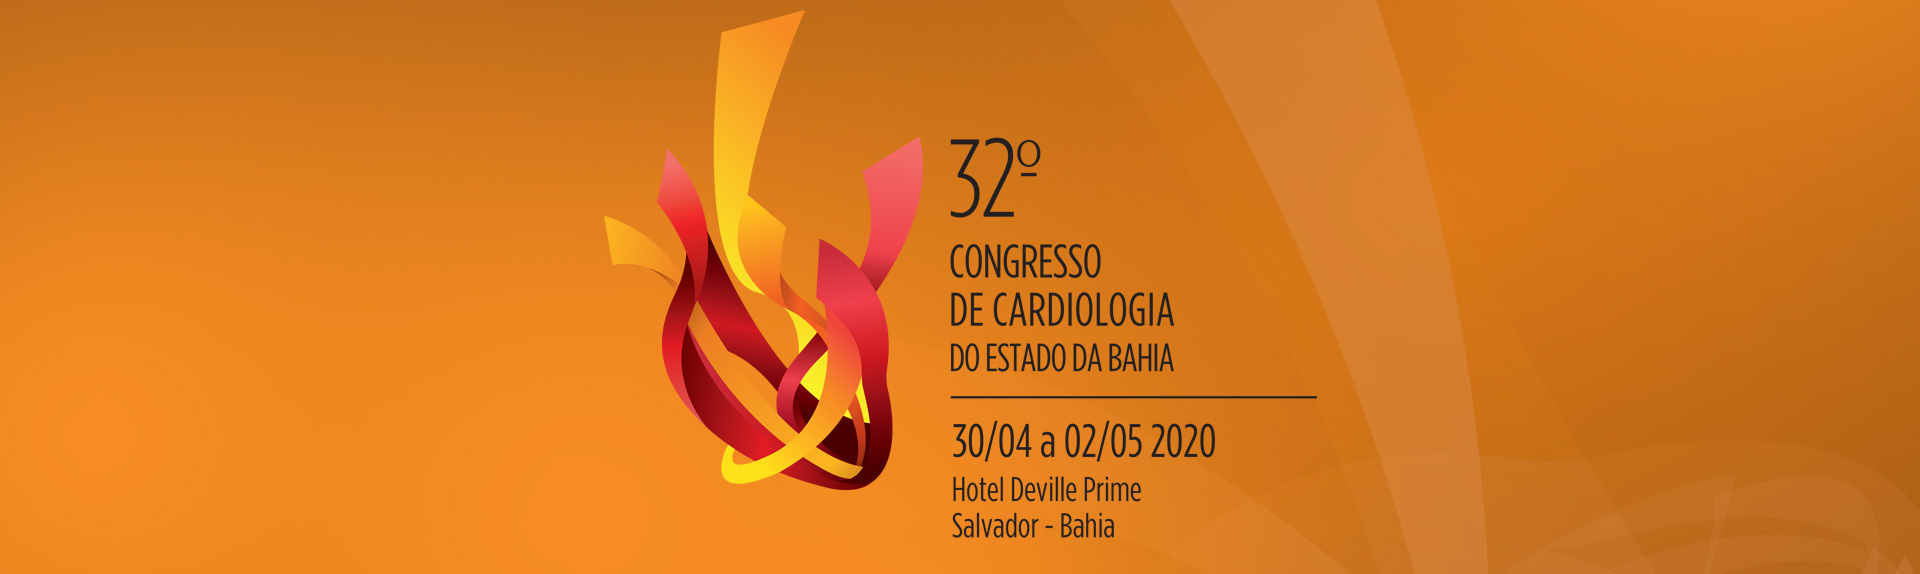 31º Congresso de Cardiologia do Estado da Bahia